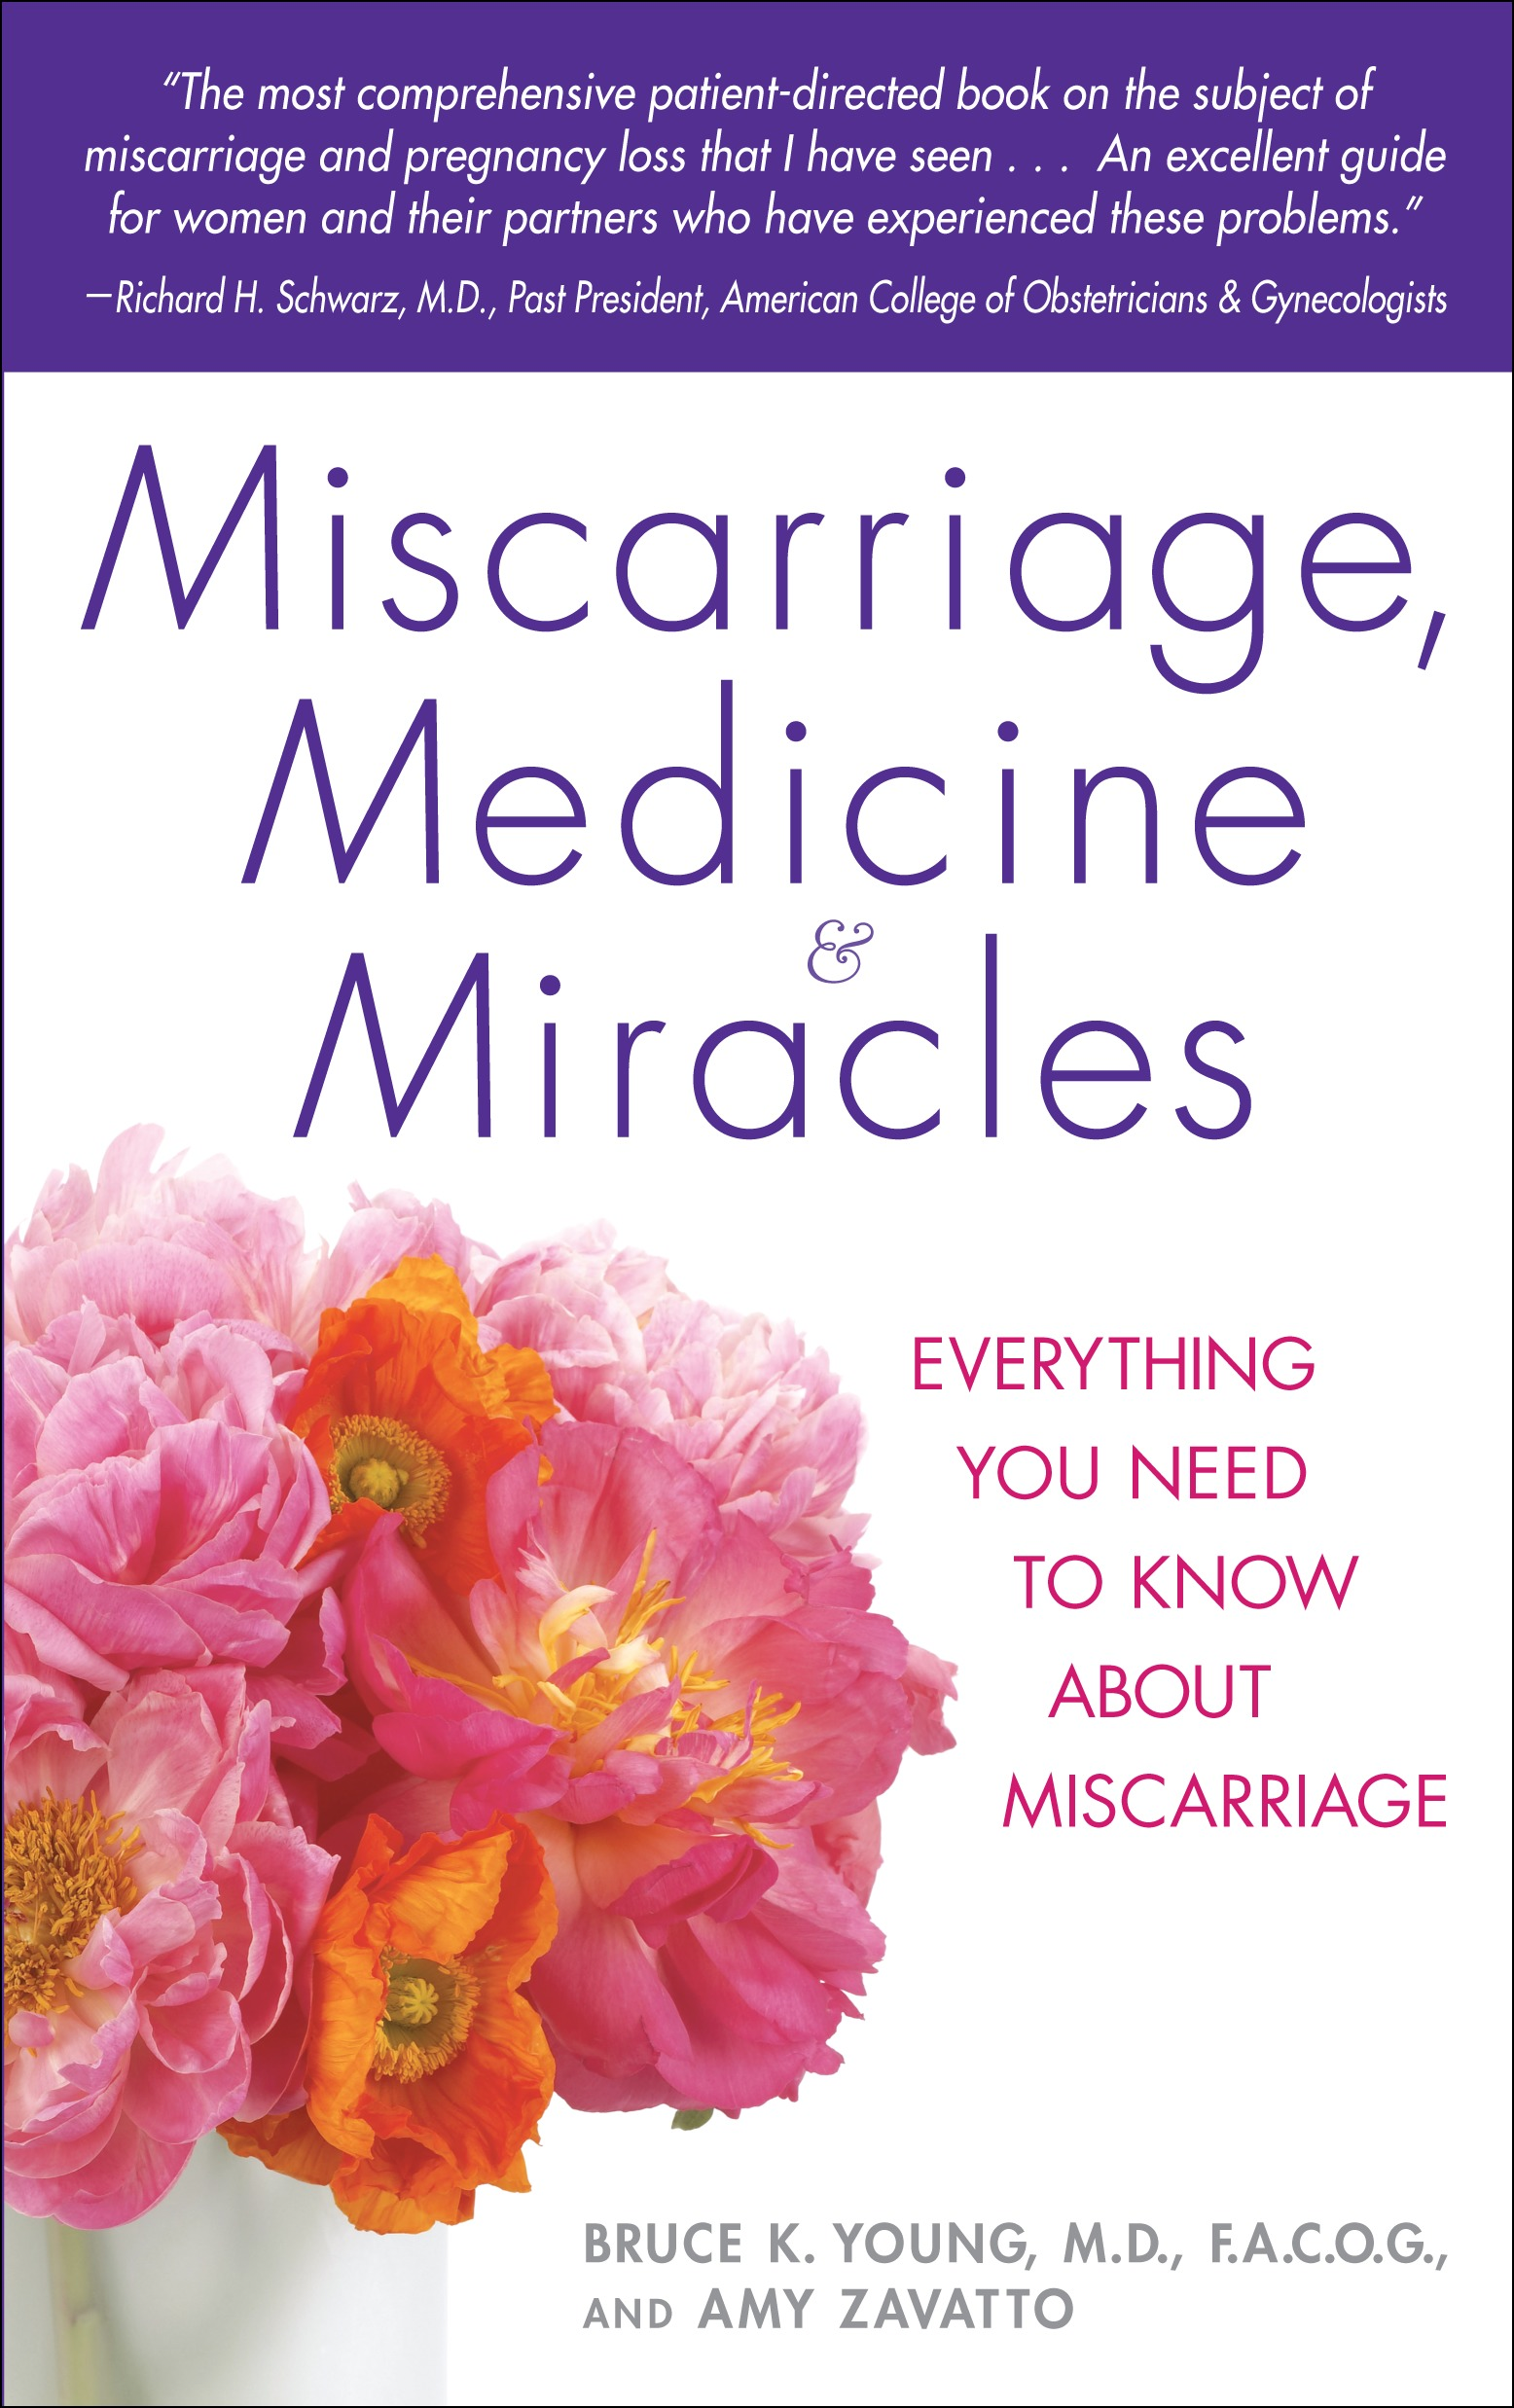 What you need to know about miscarriage